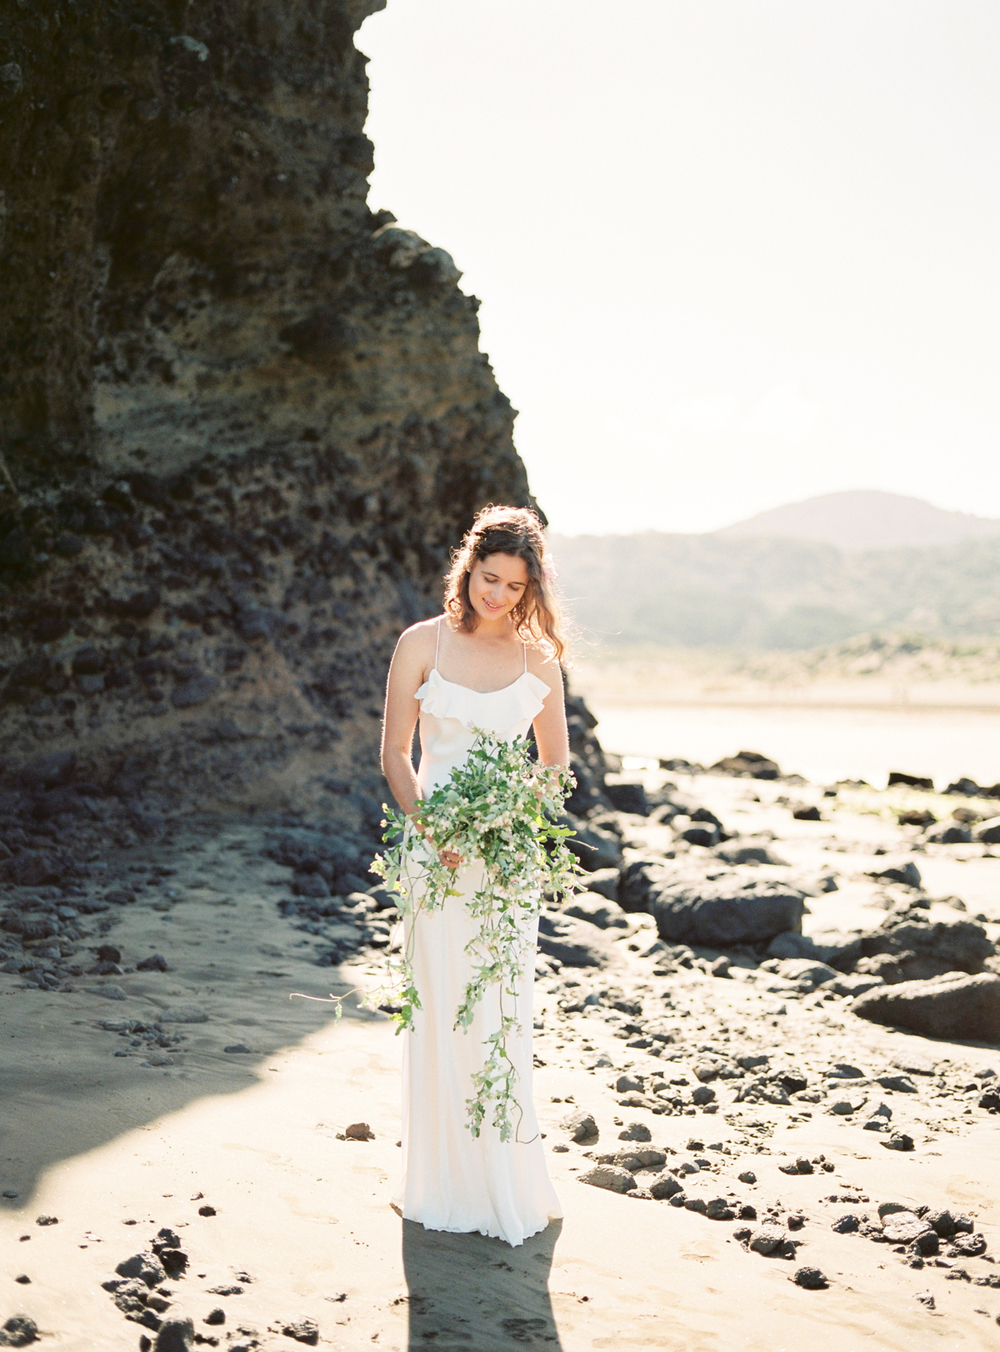 Wild wedding bouquet for beach wedding in New Zealand